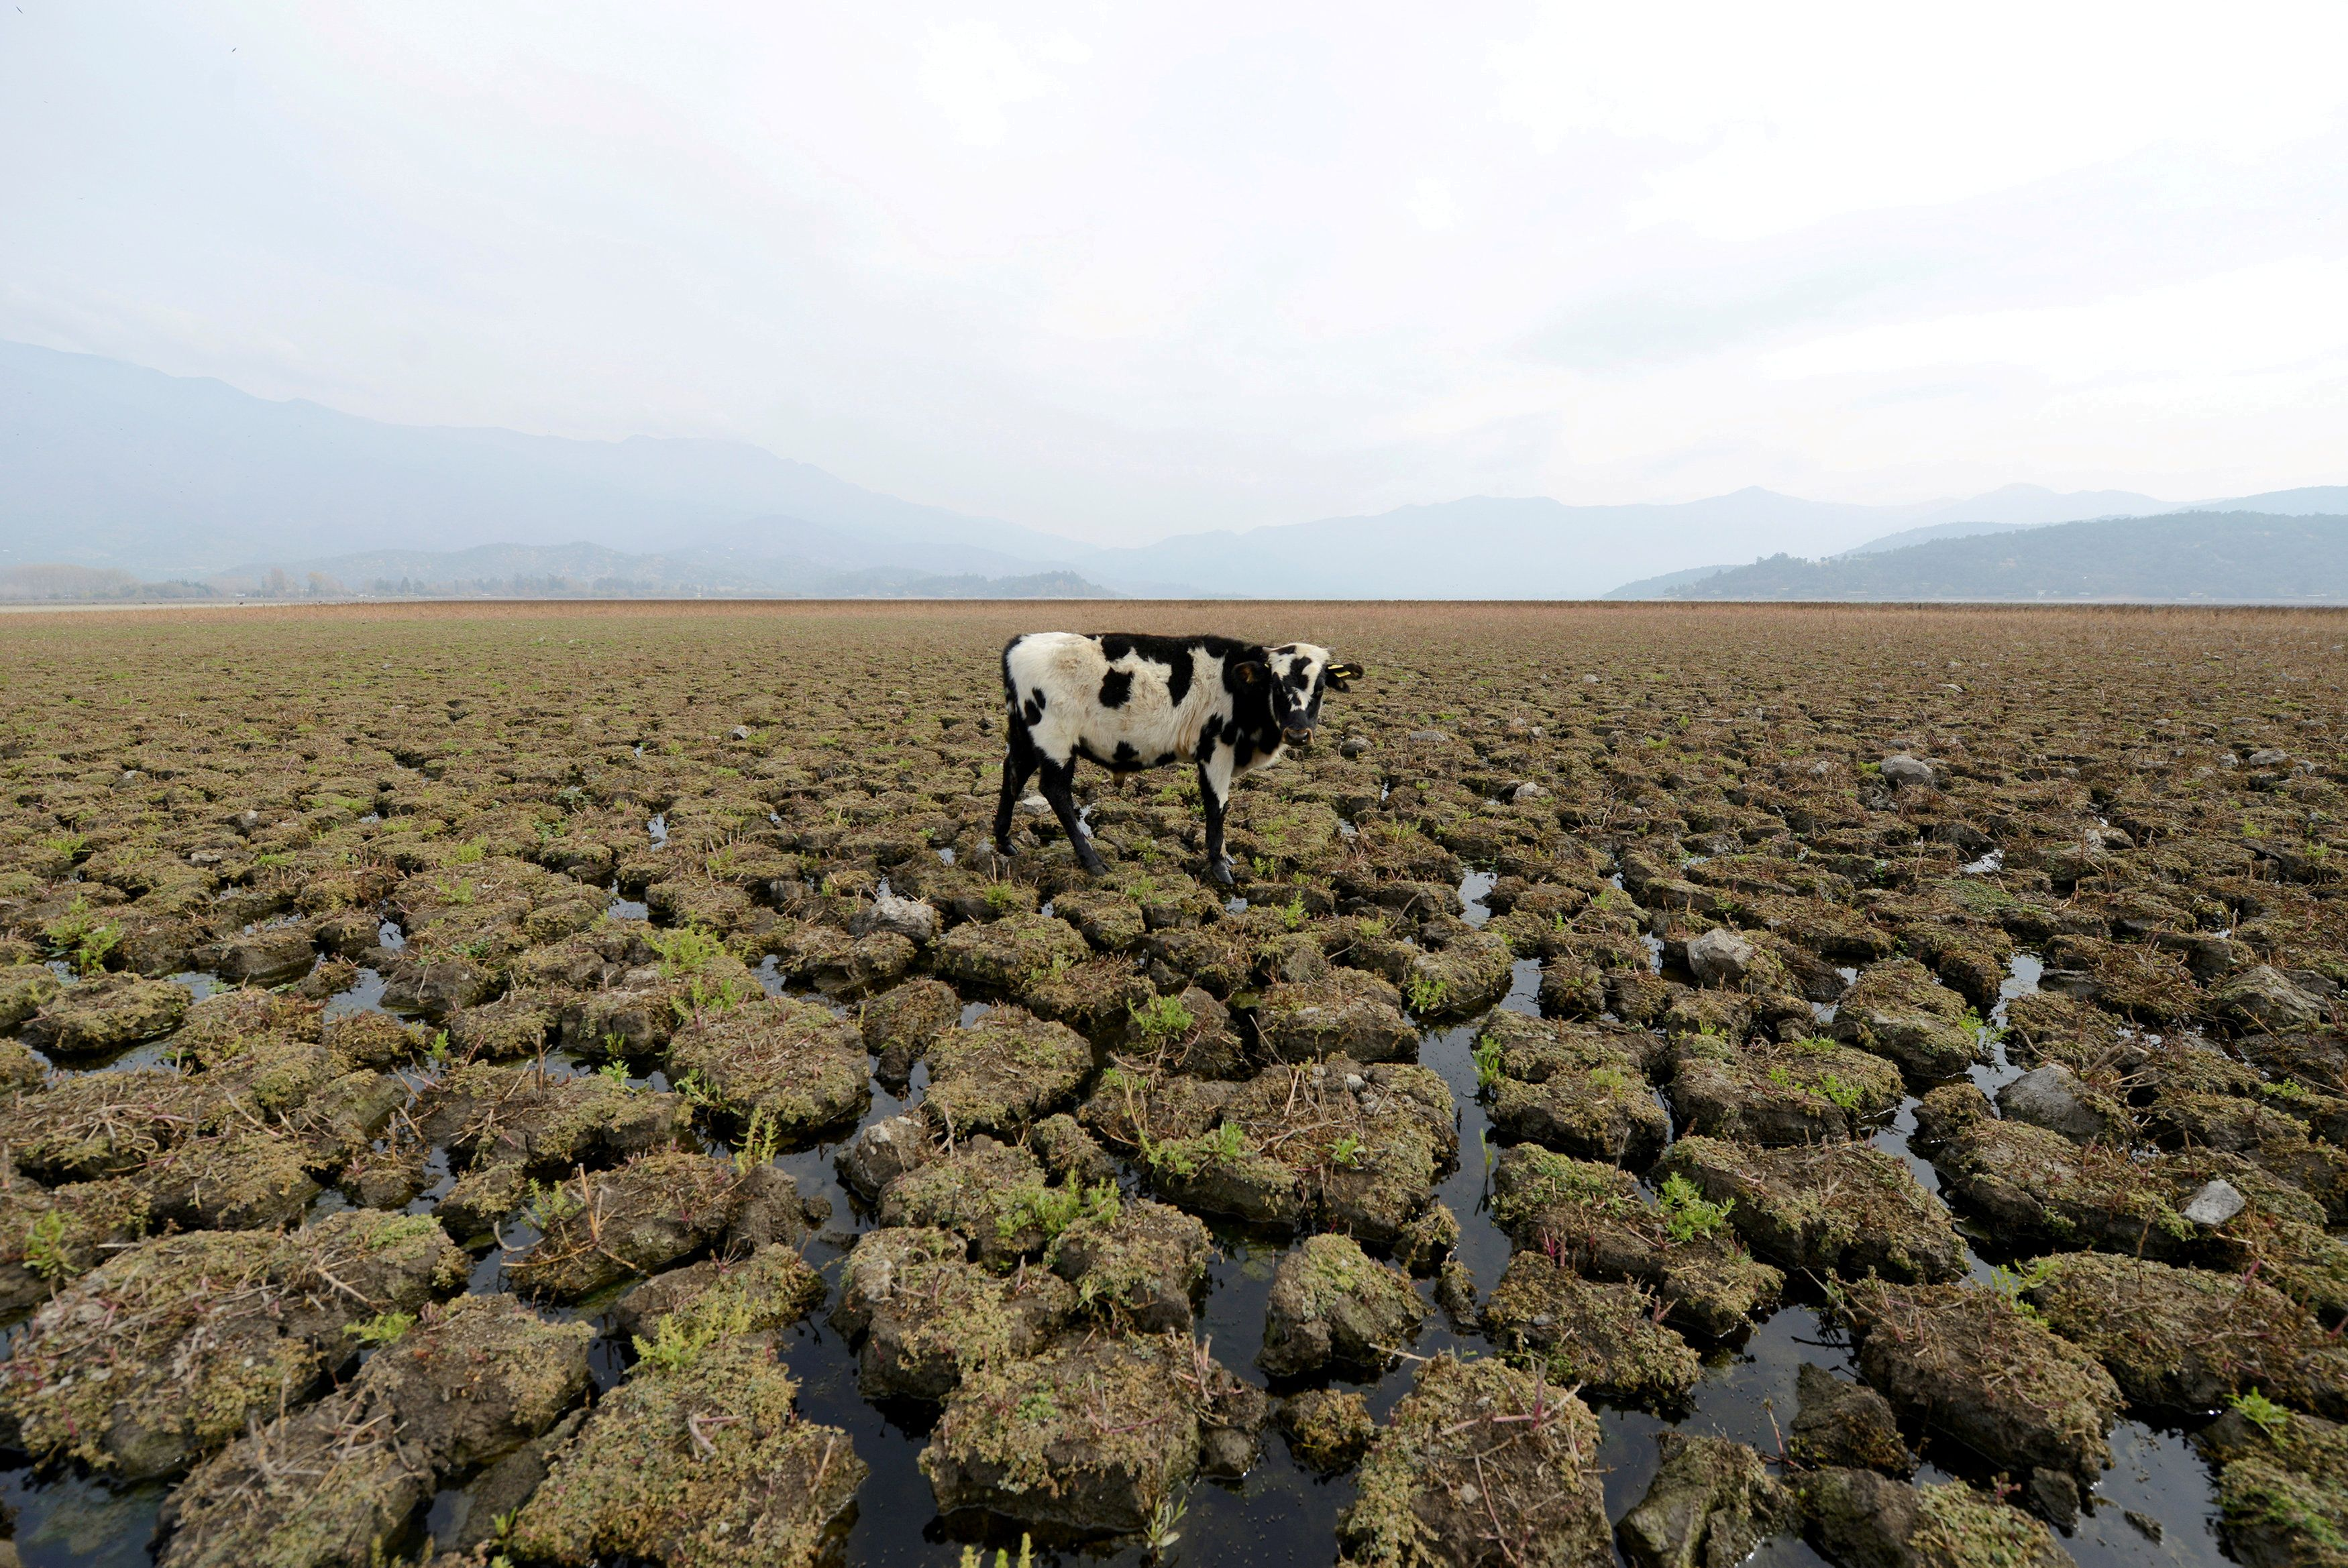 A cow is seen on land that used to be filled with water, at the Aculeo Lagoon in Paine, Chile, May 14, 2018. REUTERS/Matias Delacroix/File Photo